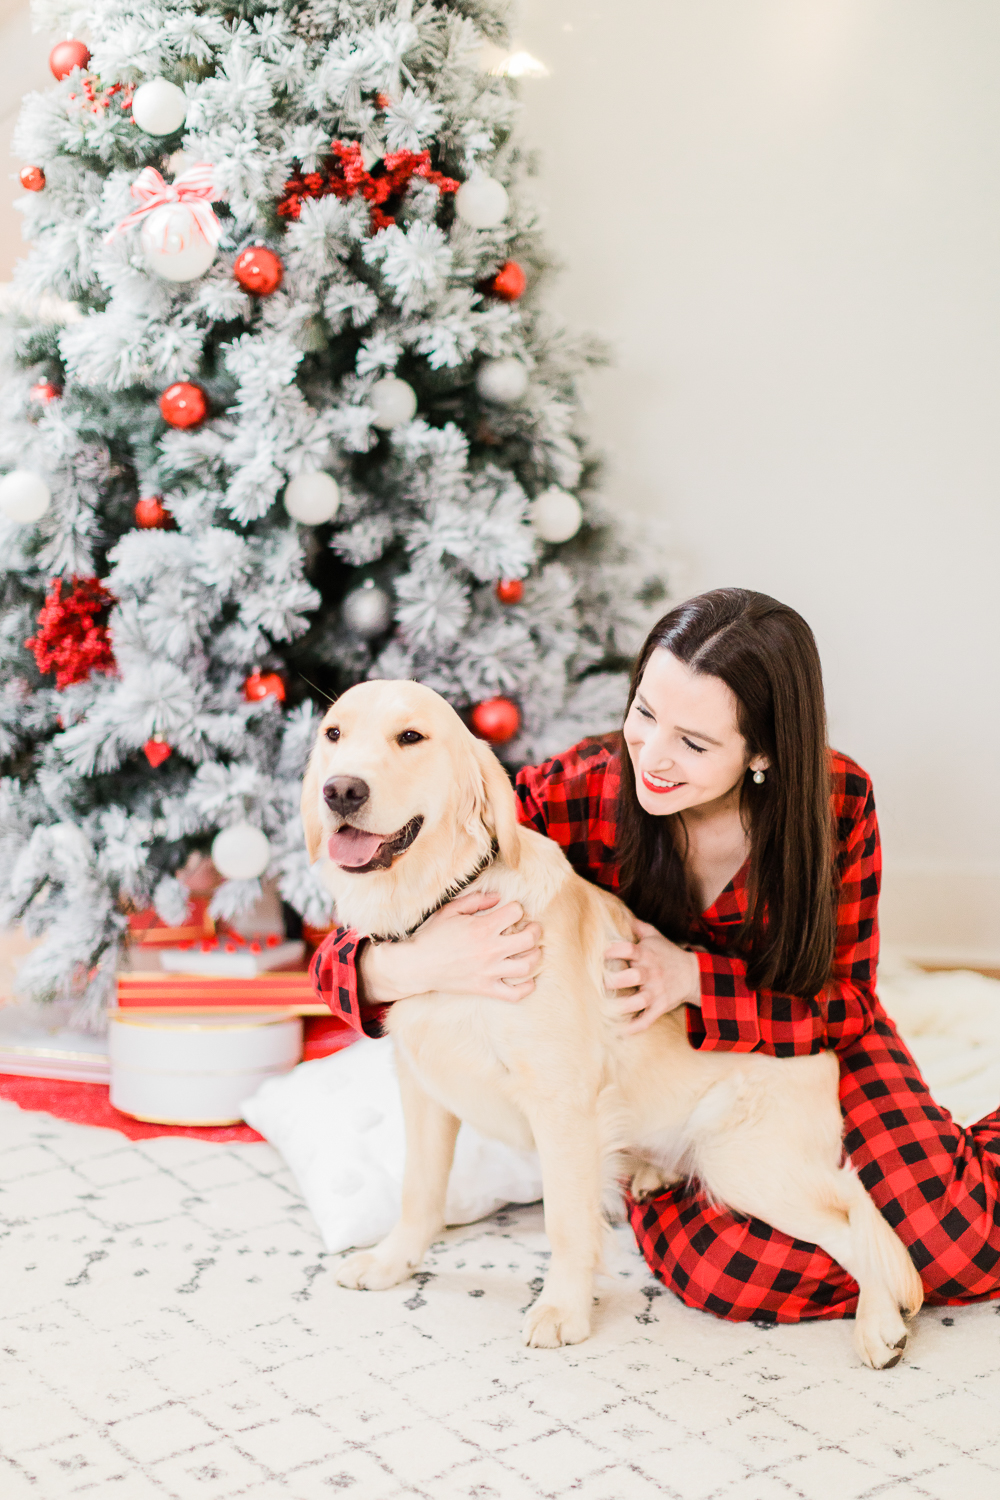 A Golden Retriever Christmas: Happy Holidays from Our Furry Family to Yours by southern lifestyle blogger and golden retriever dog mom Stephanie Ziajka from Diary of a Debutante